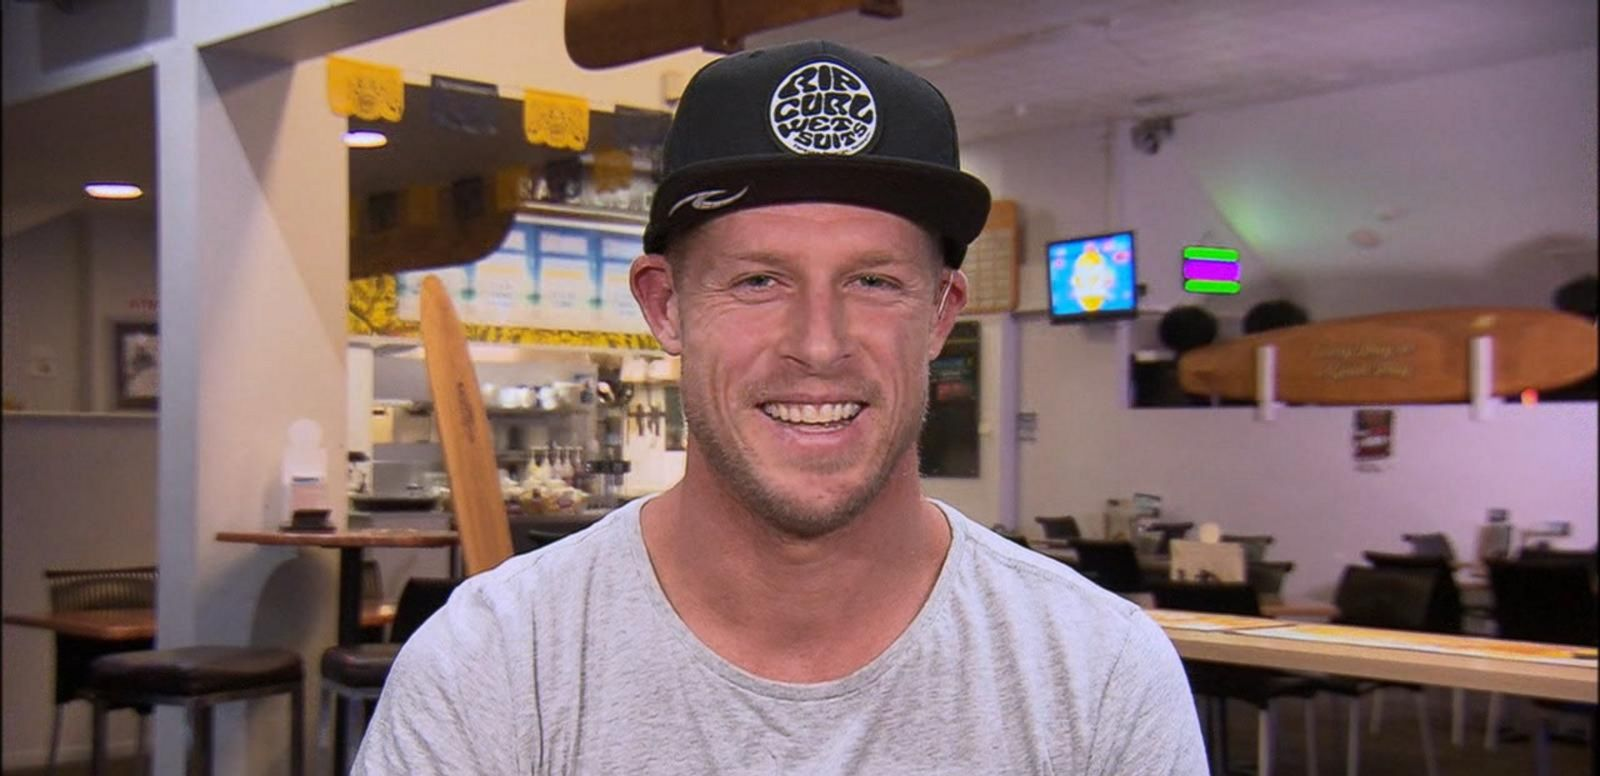 VIDEO: Mick Fanning Recounts Terrifying Shark Attack